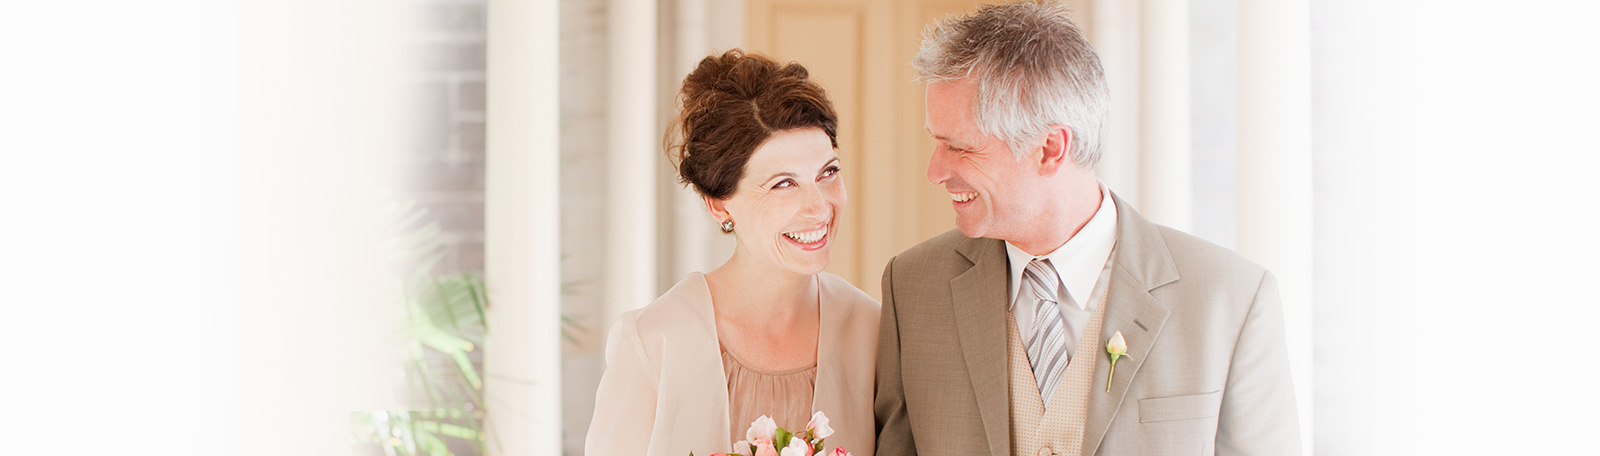 classy older couple smiling